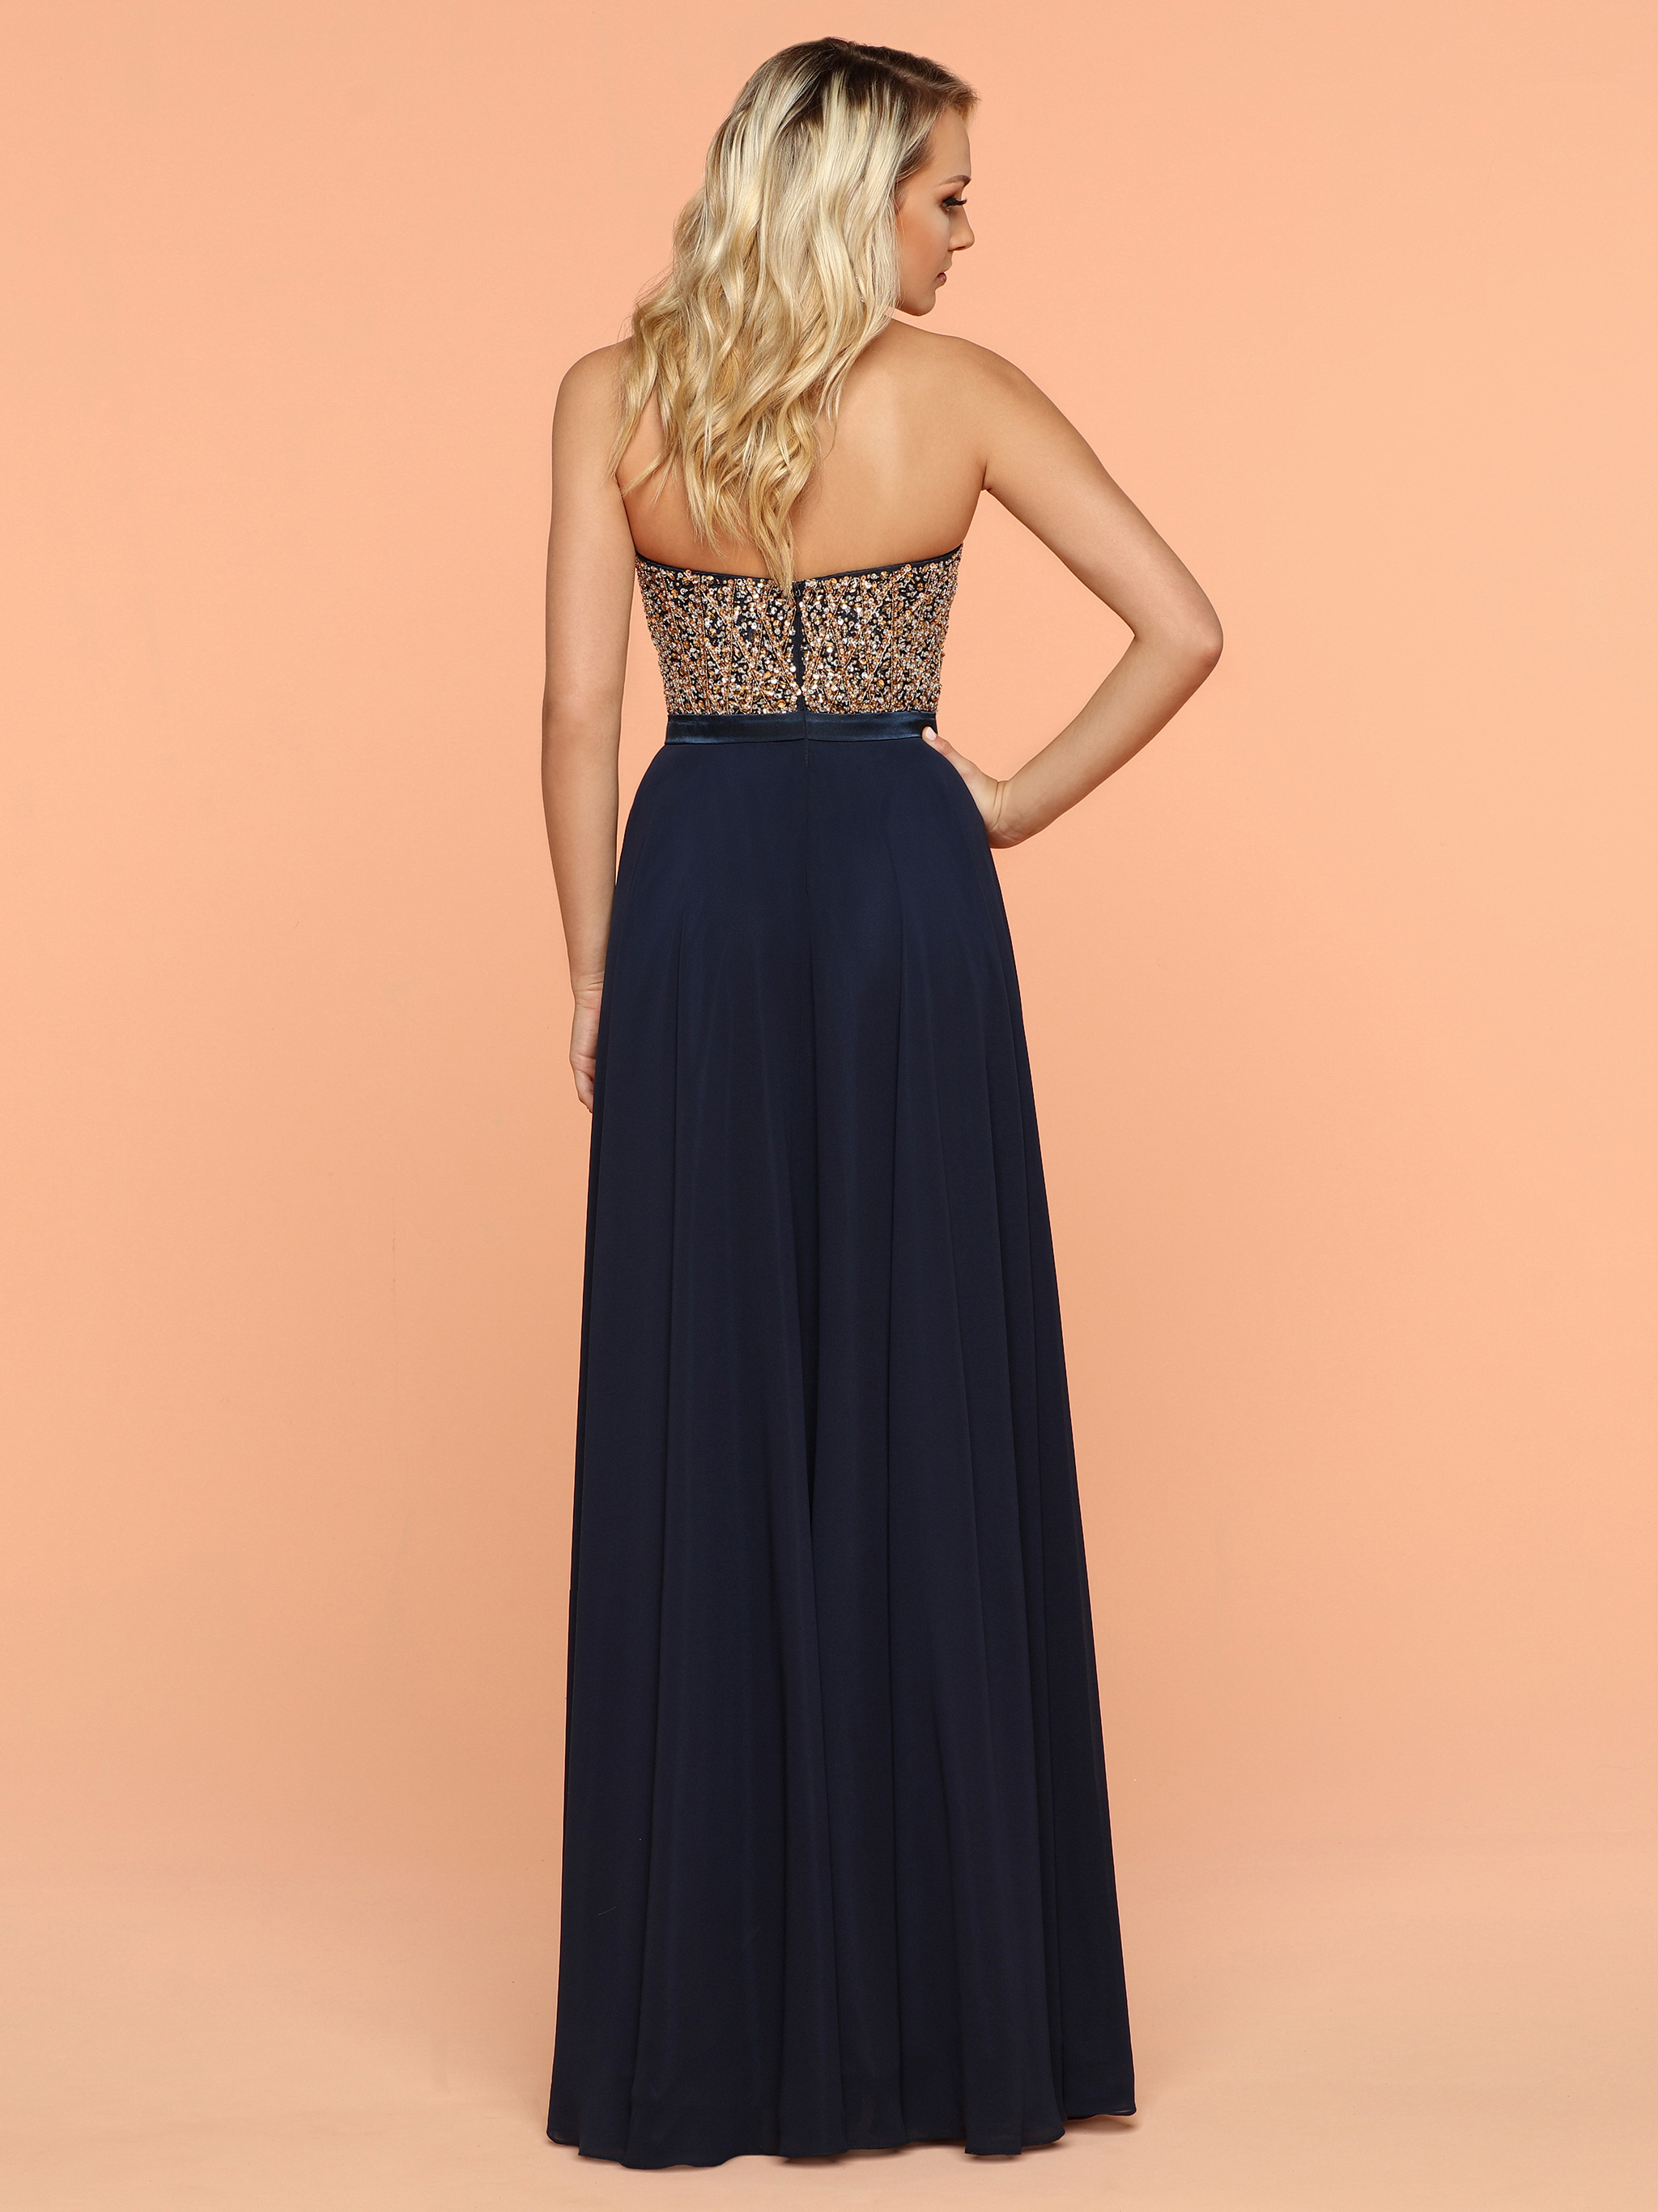 Image showing back view of style #71842